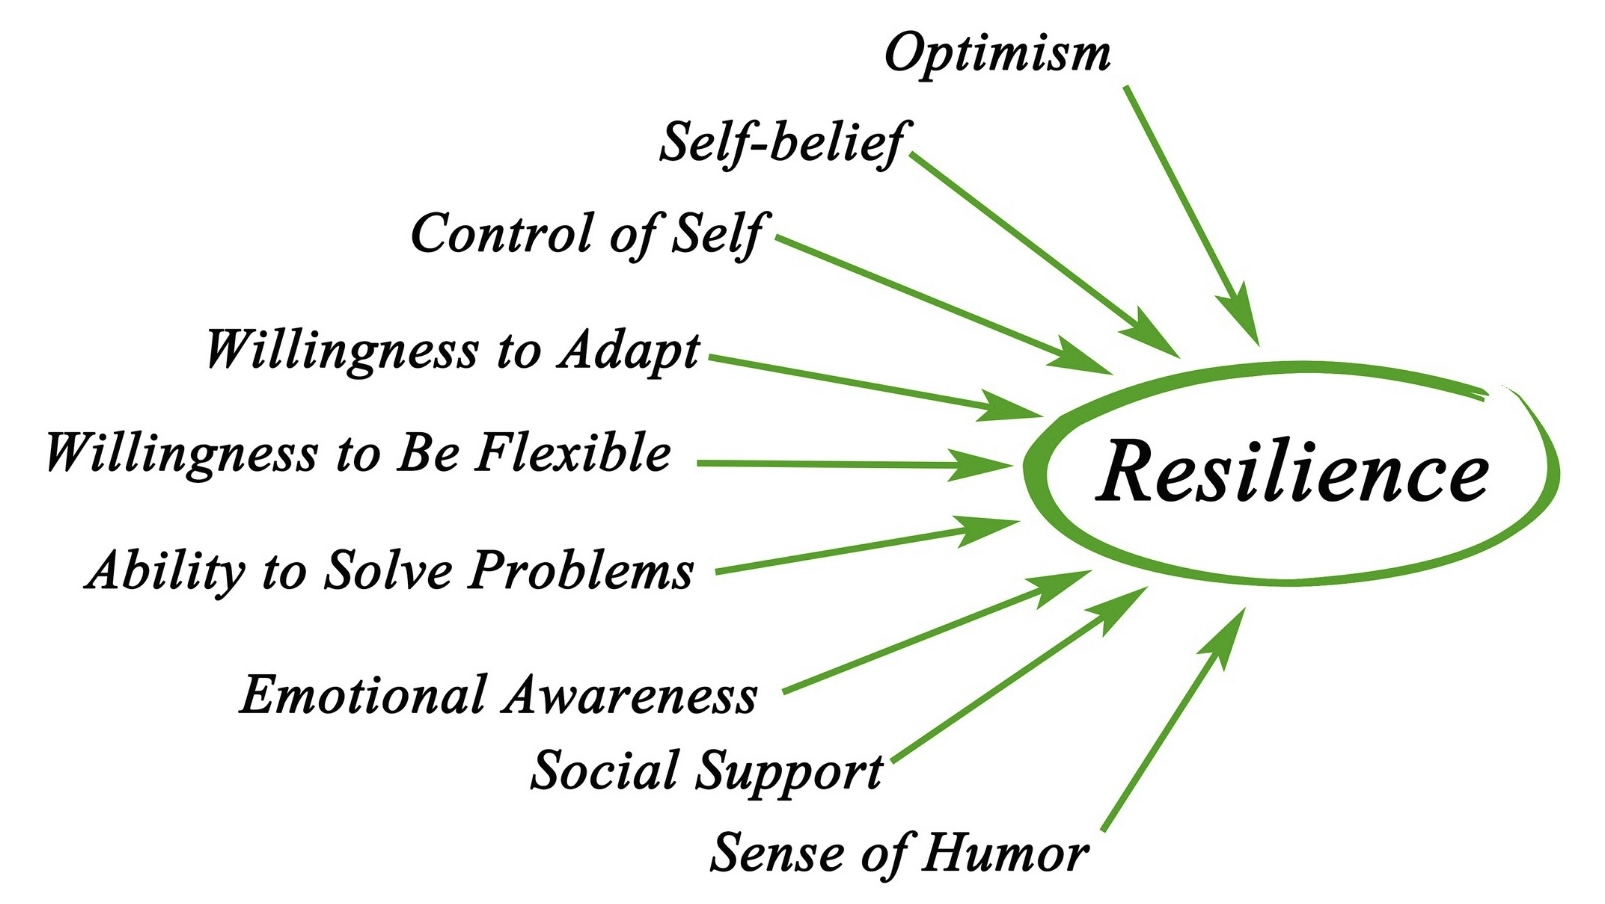 Building resilience is key